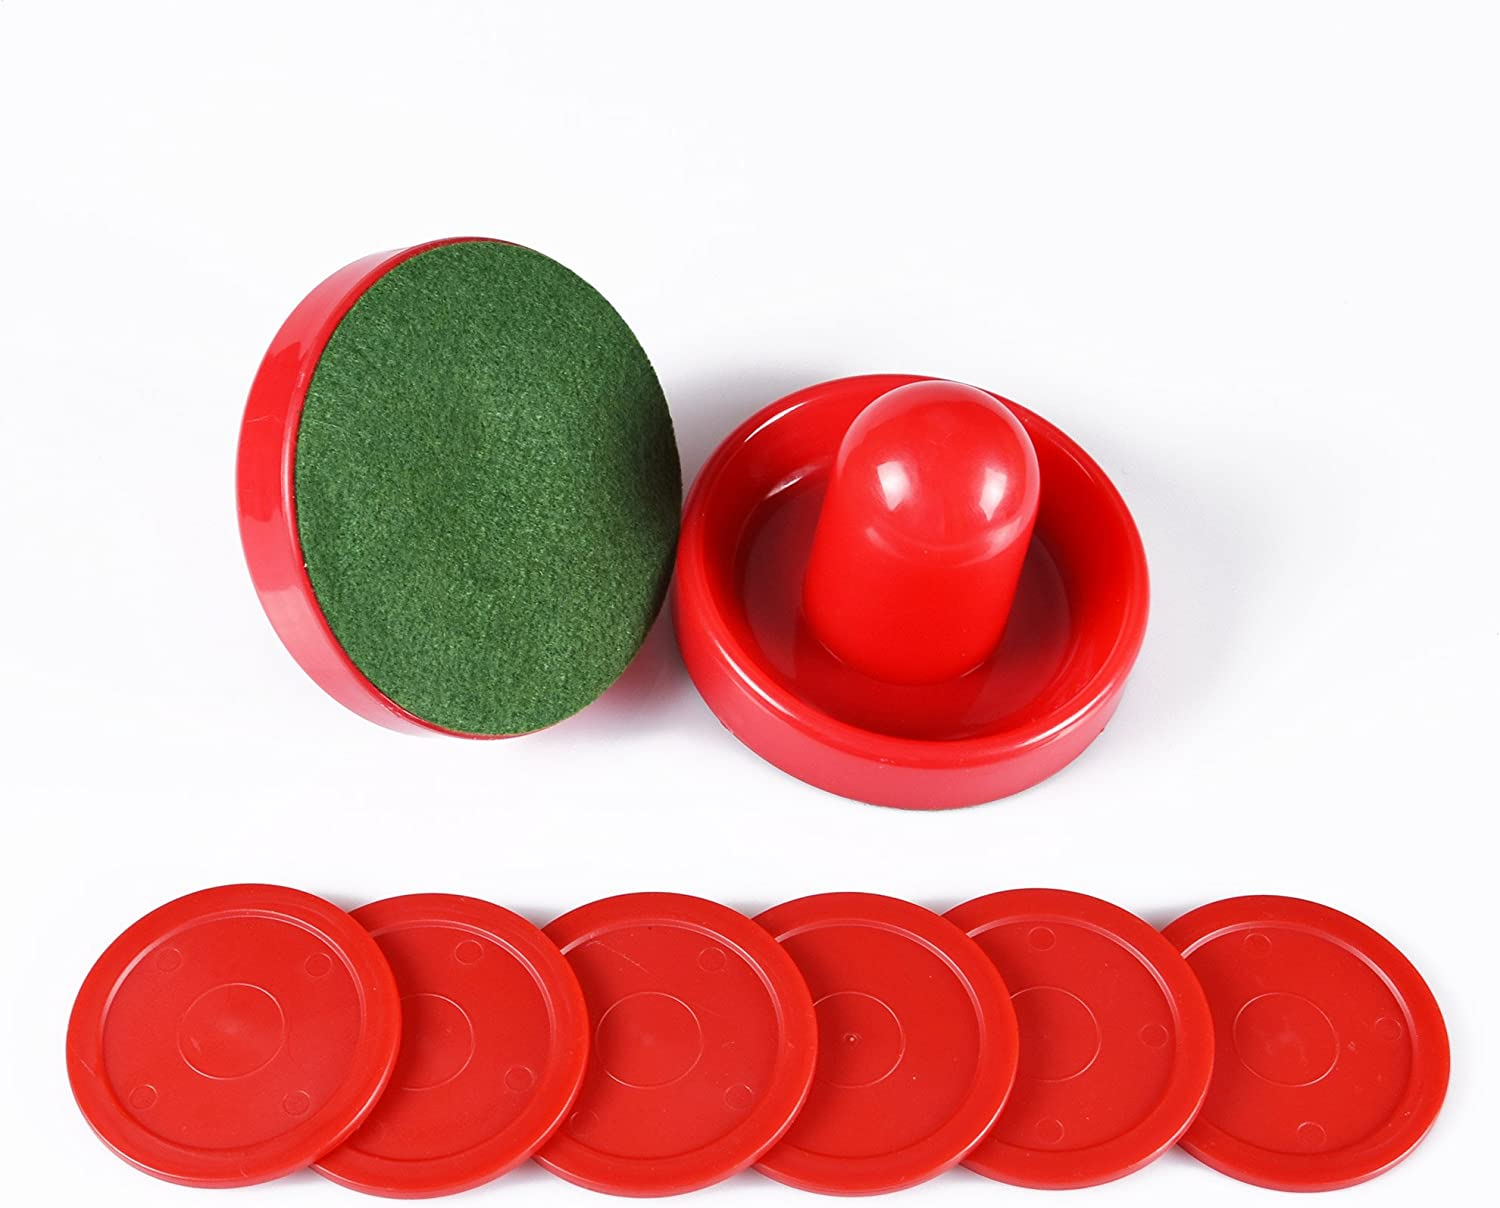 Air Hockey Red Replacement Pucks & Slider Pusher Goalies for Game Tables, Equipment, Accessories (2 Striker, 6 Puck Pack) (Normal) : Sports & Outdoors